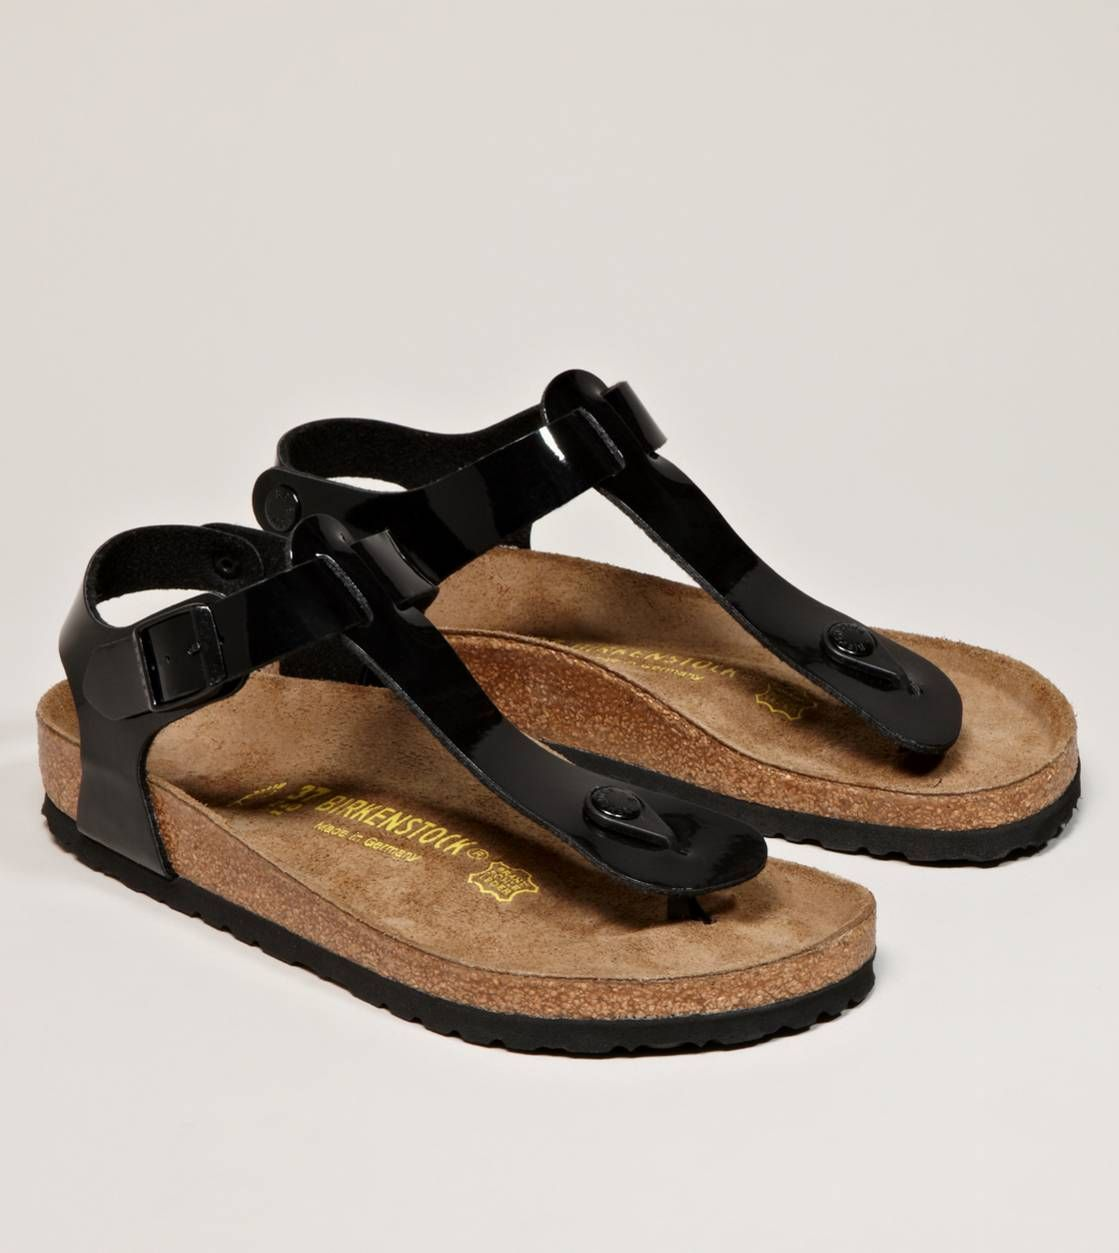 9f04e6bc8602 Birkenstock. These would be perfect in tan suede.